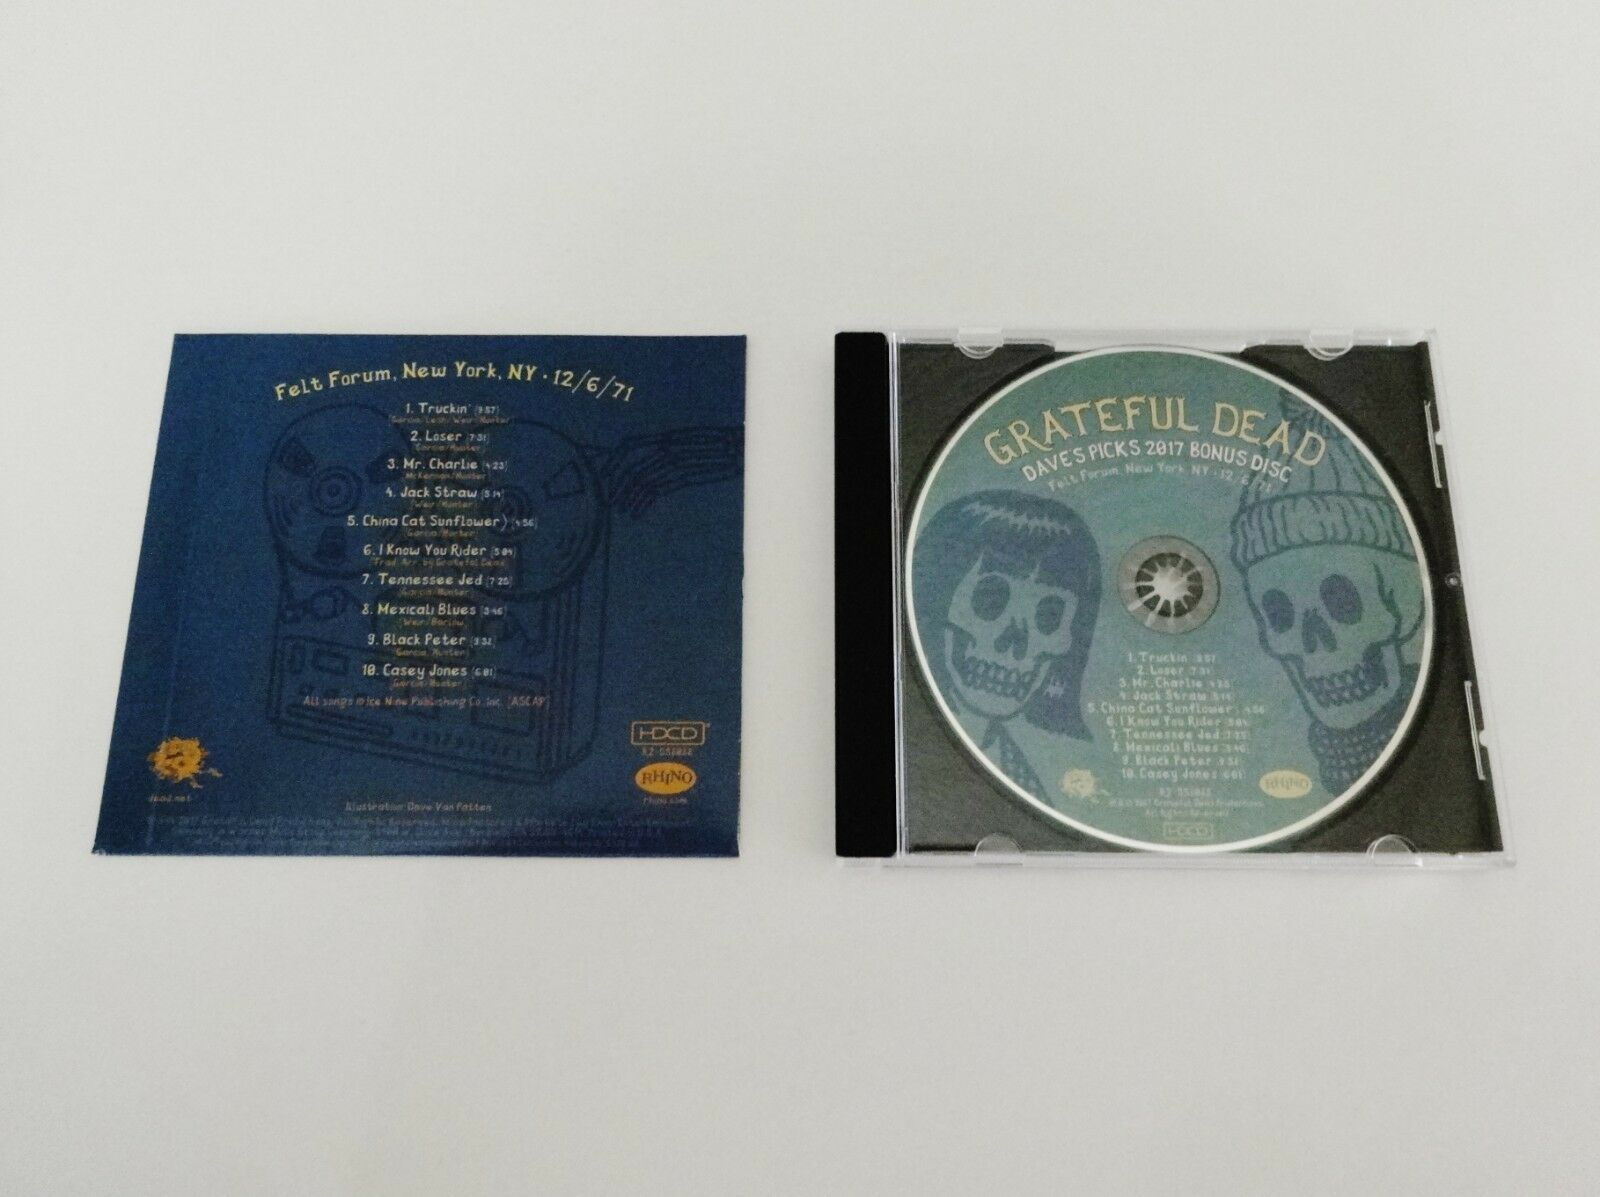 Grateful Dead Dave's Picks 2017 Bonus Disc CD Felt Forum NY 12/6/1971 Vol  22 1cd